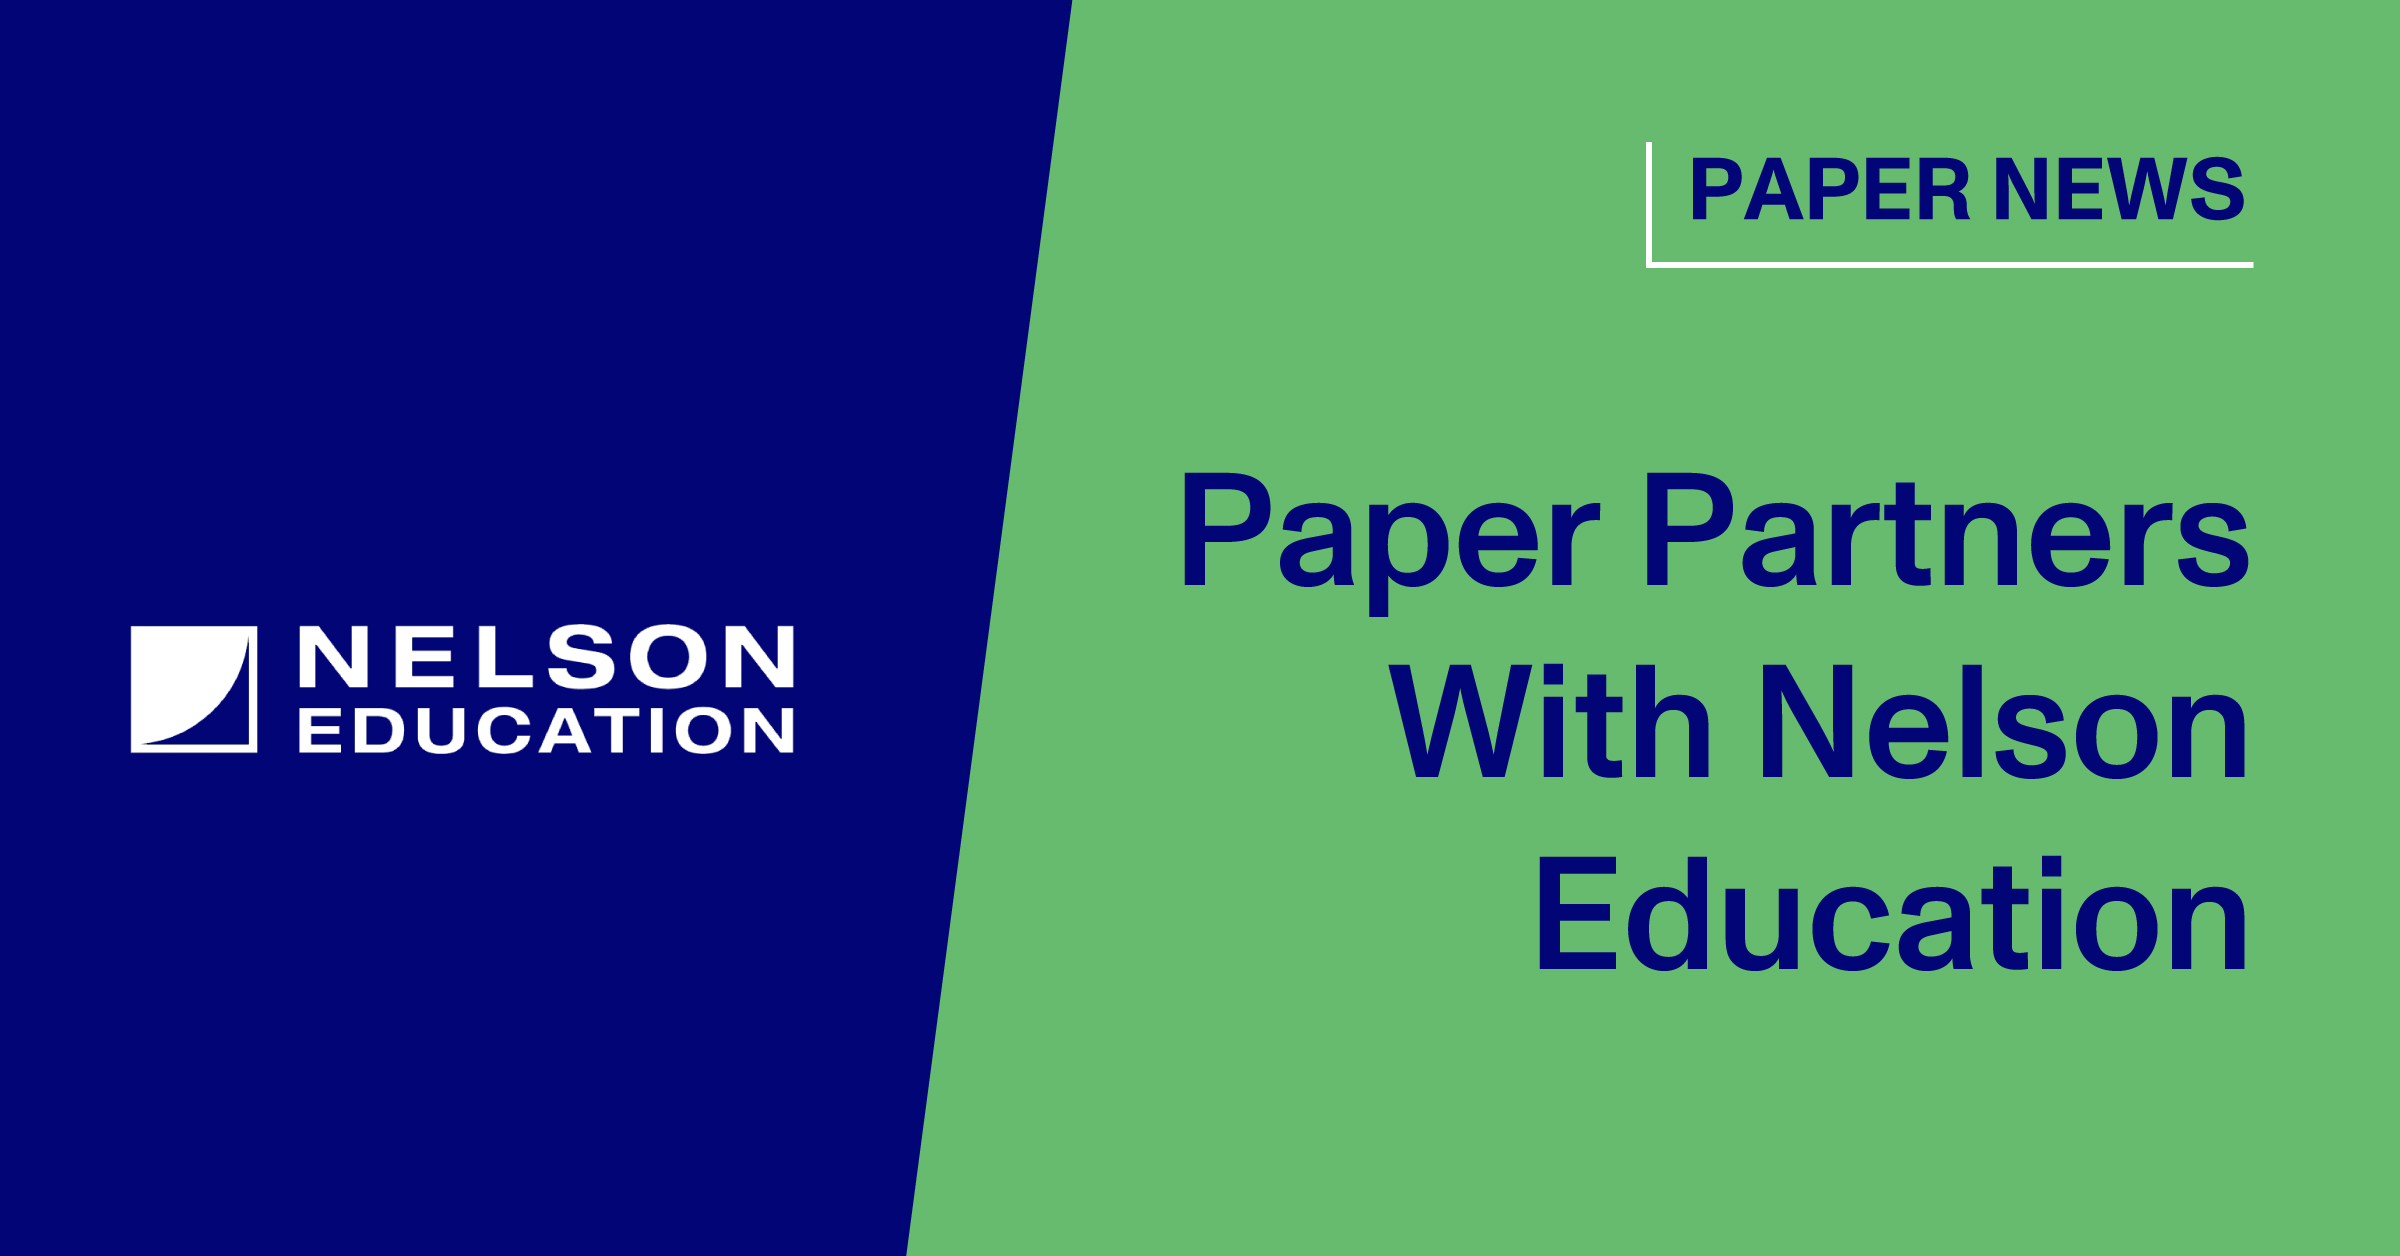 Paper Partners With Nelson Education